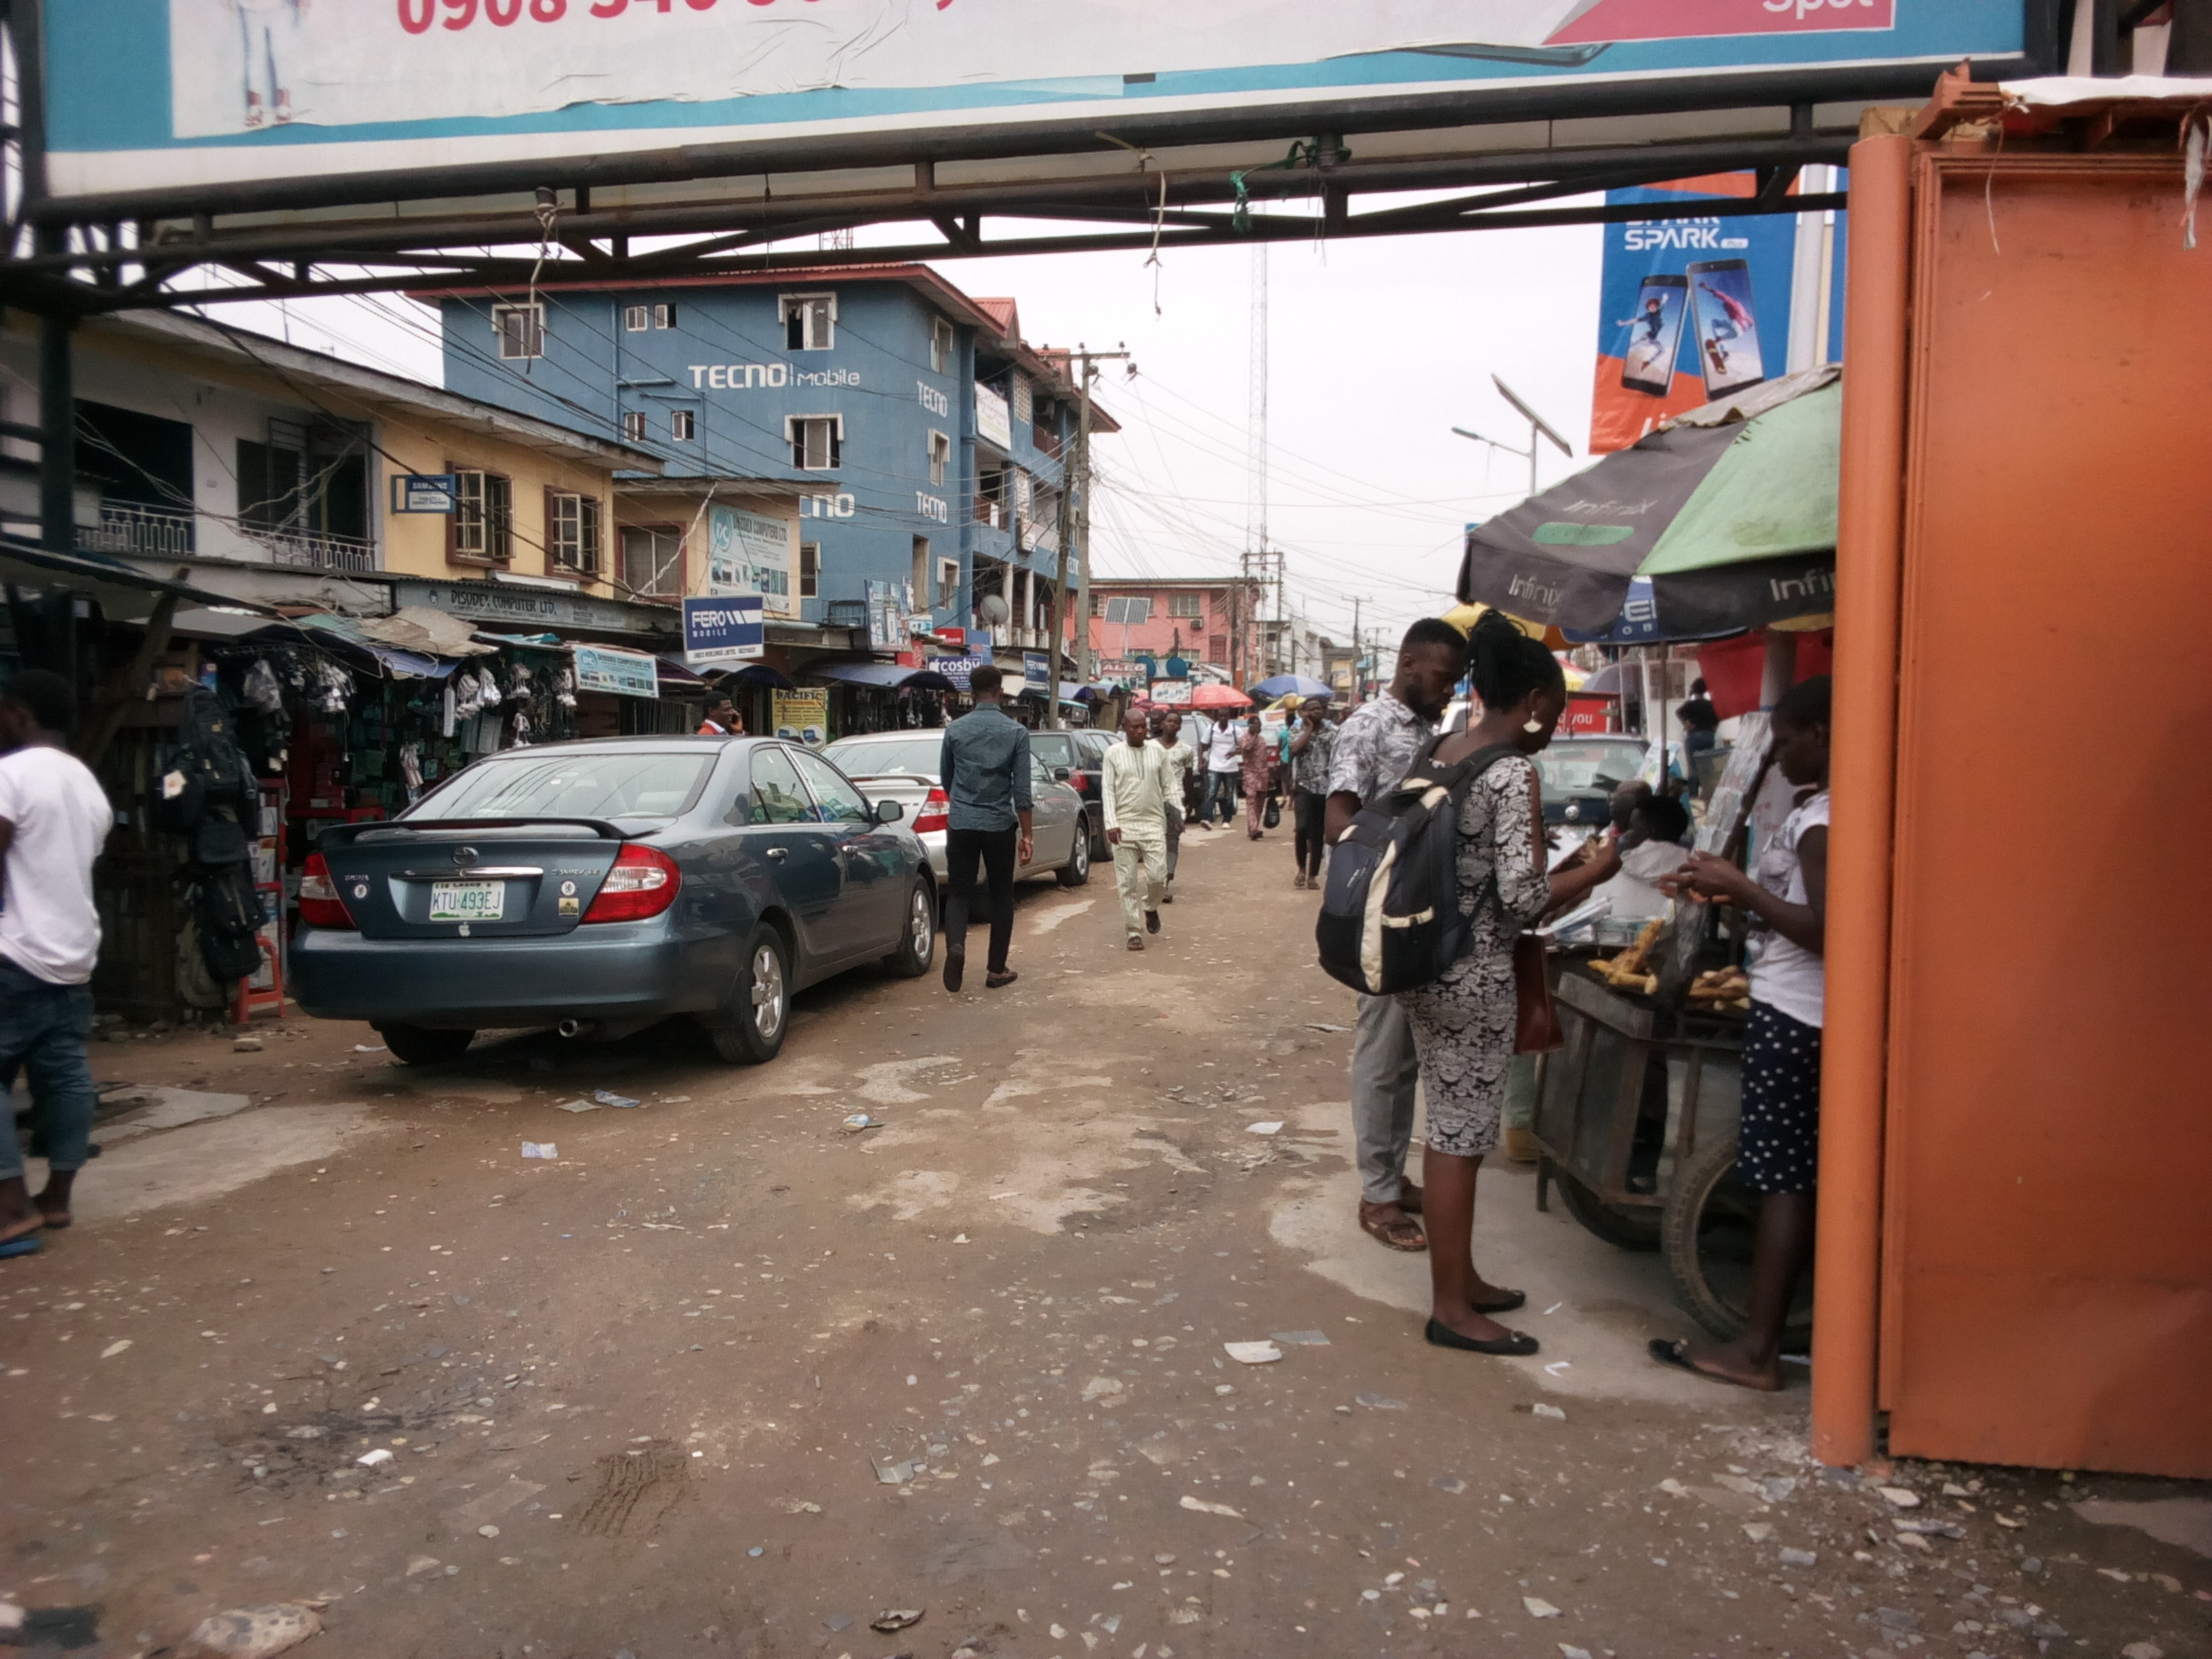 4 Reasons Computer Village dealers may not relocate: Lagos By Gina Emmanuel